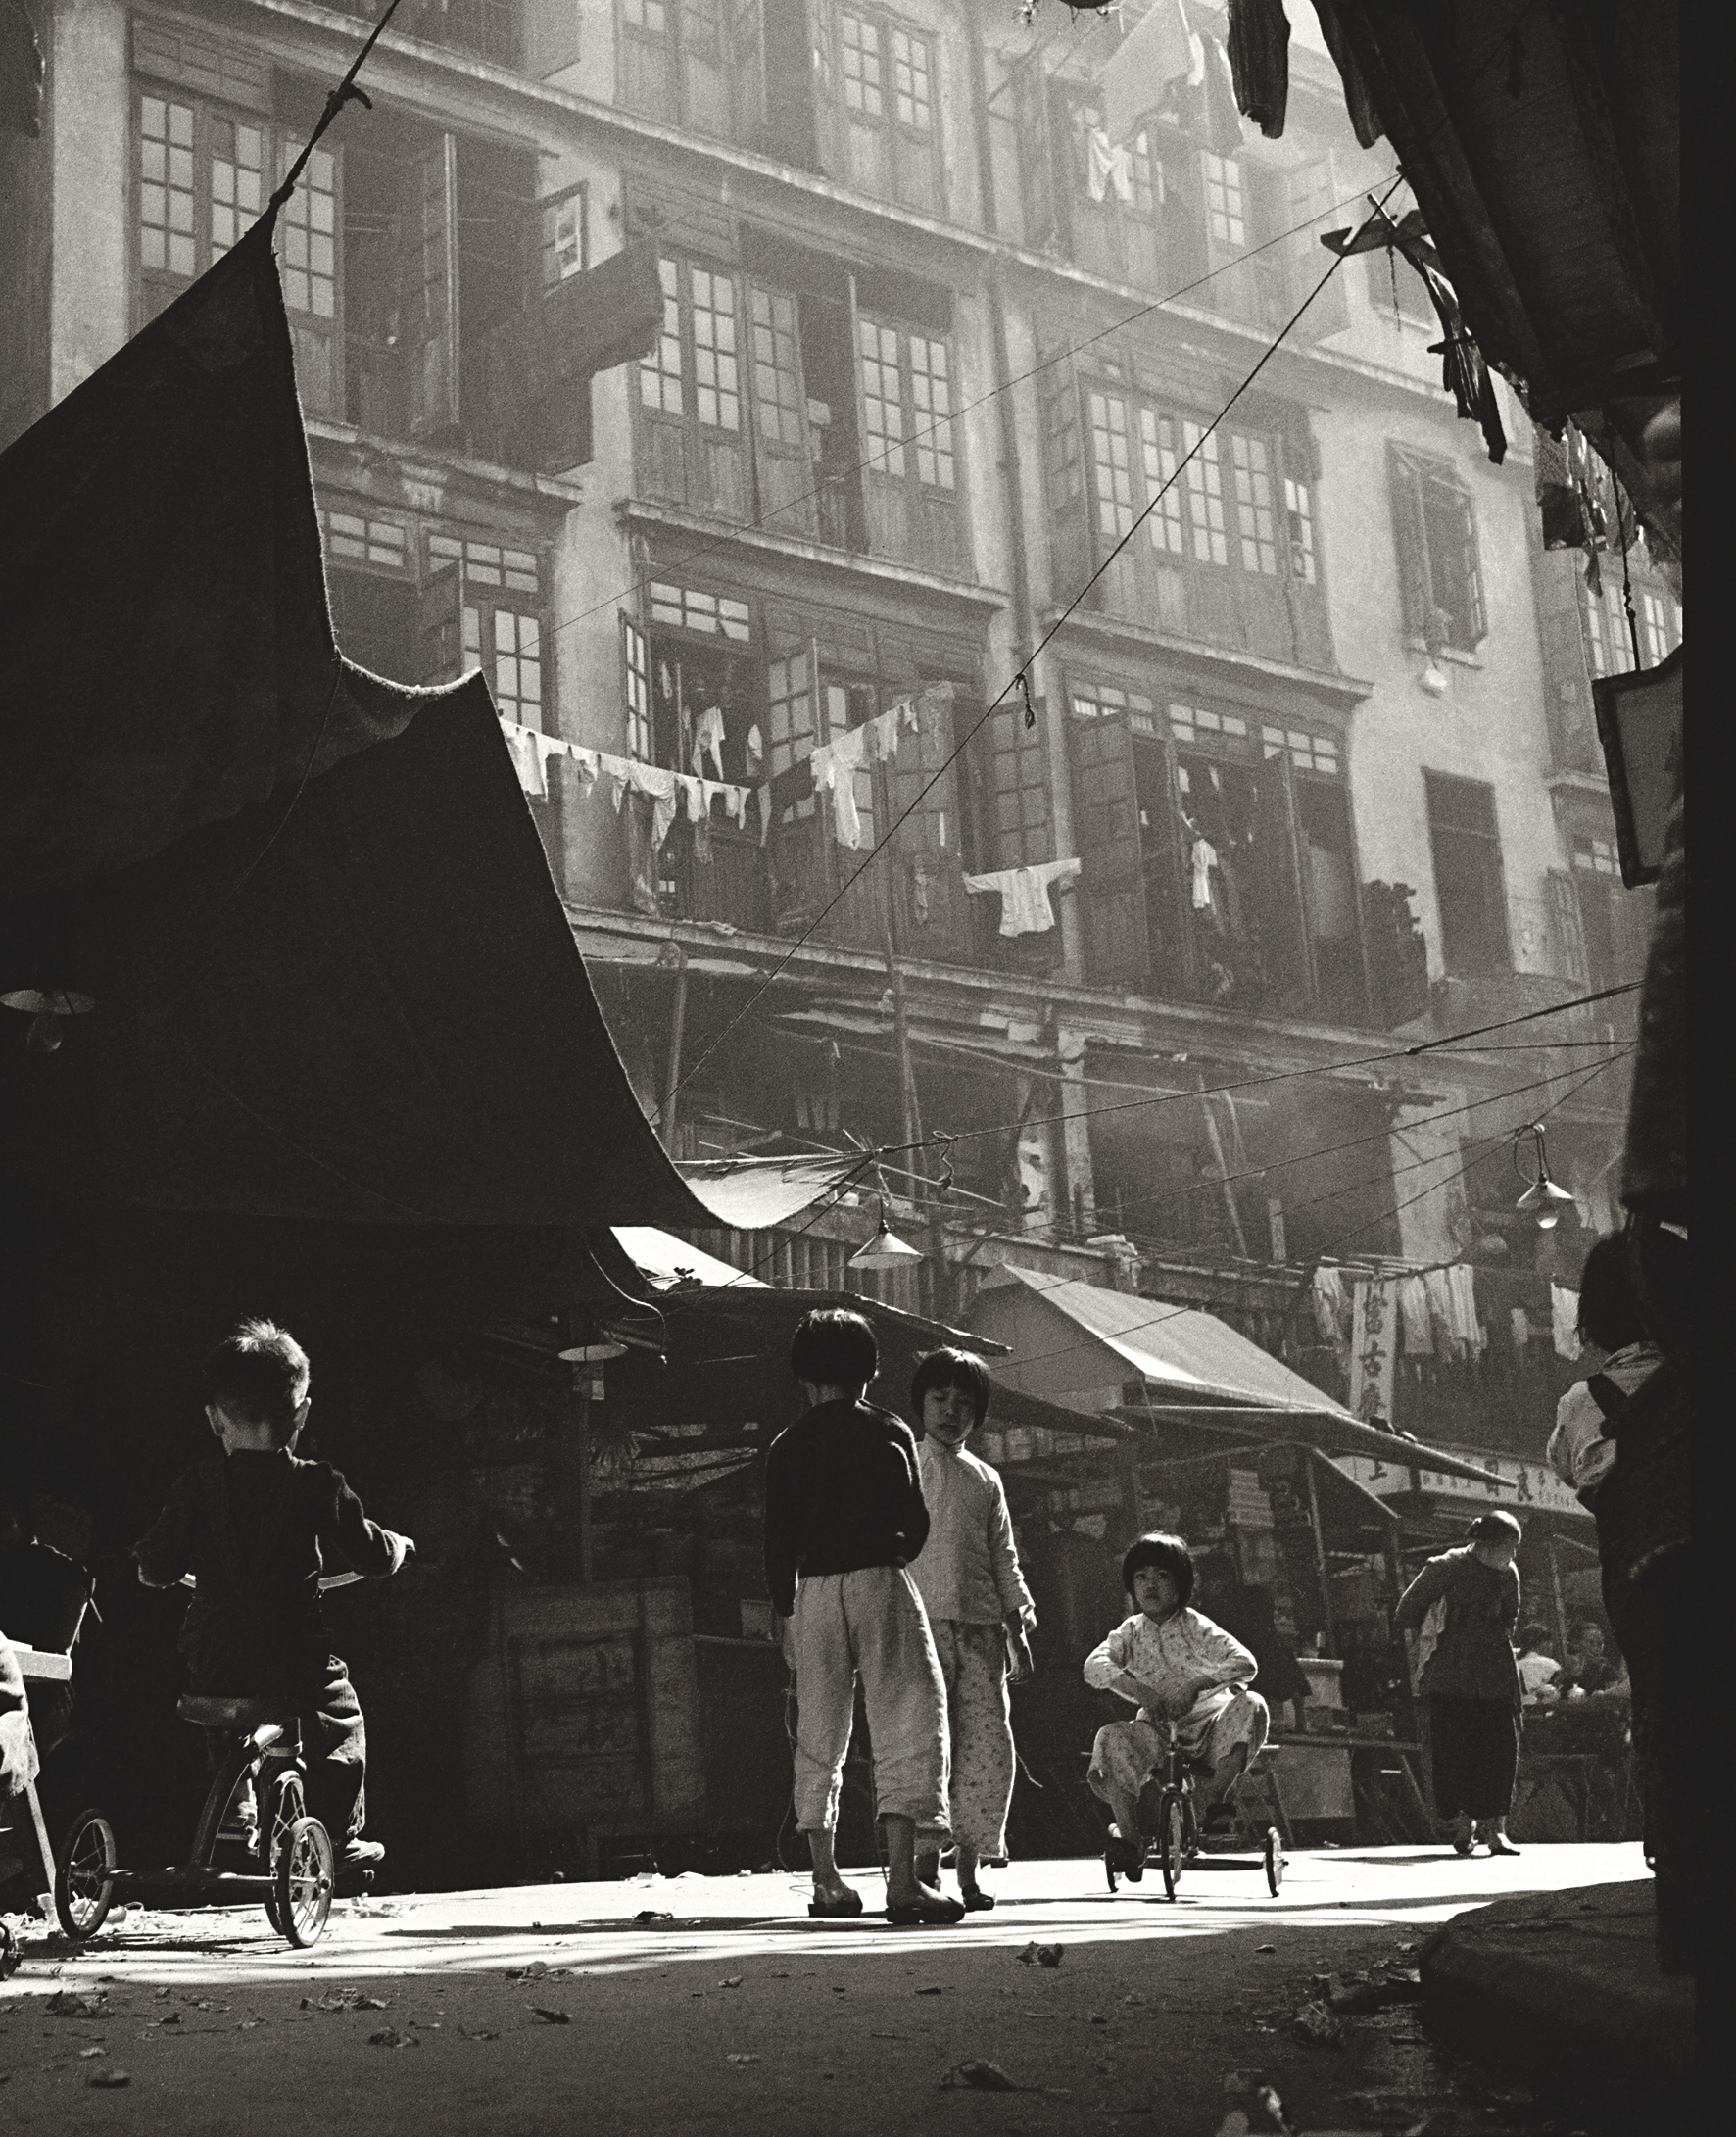 Fan Ho 'Age of Innocence in Sheung Wan (童趣)' Hong Kong 1950s and 60s, courtesy of Blue Lotus Gallery